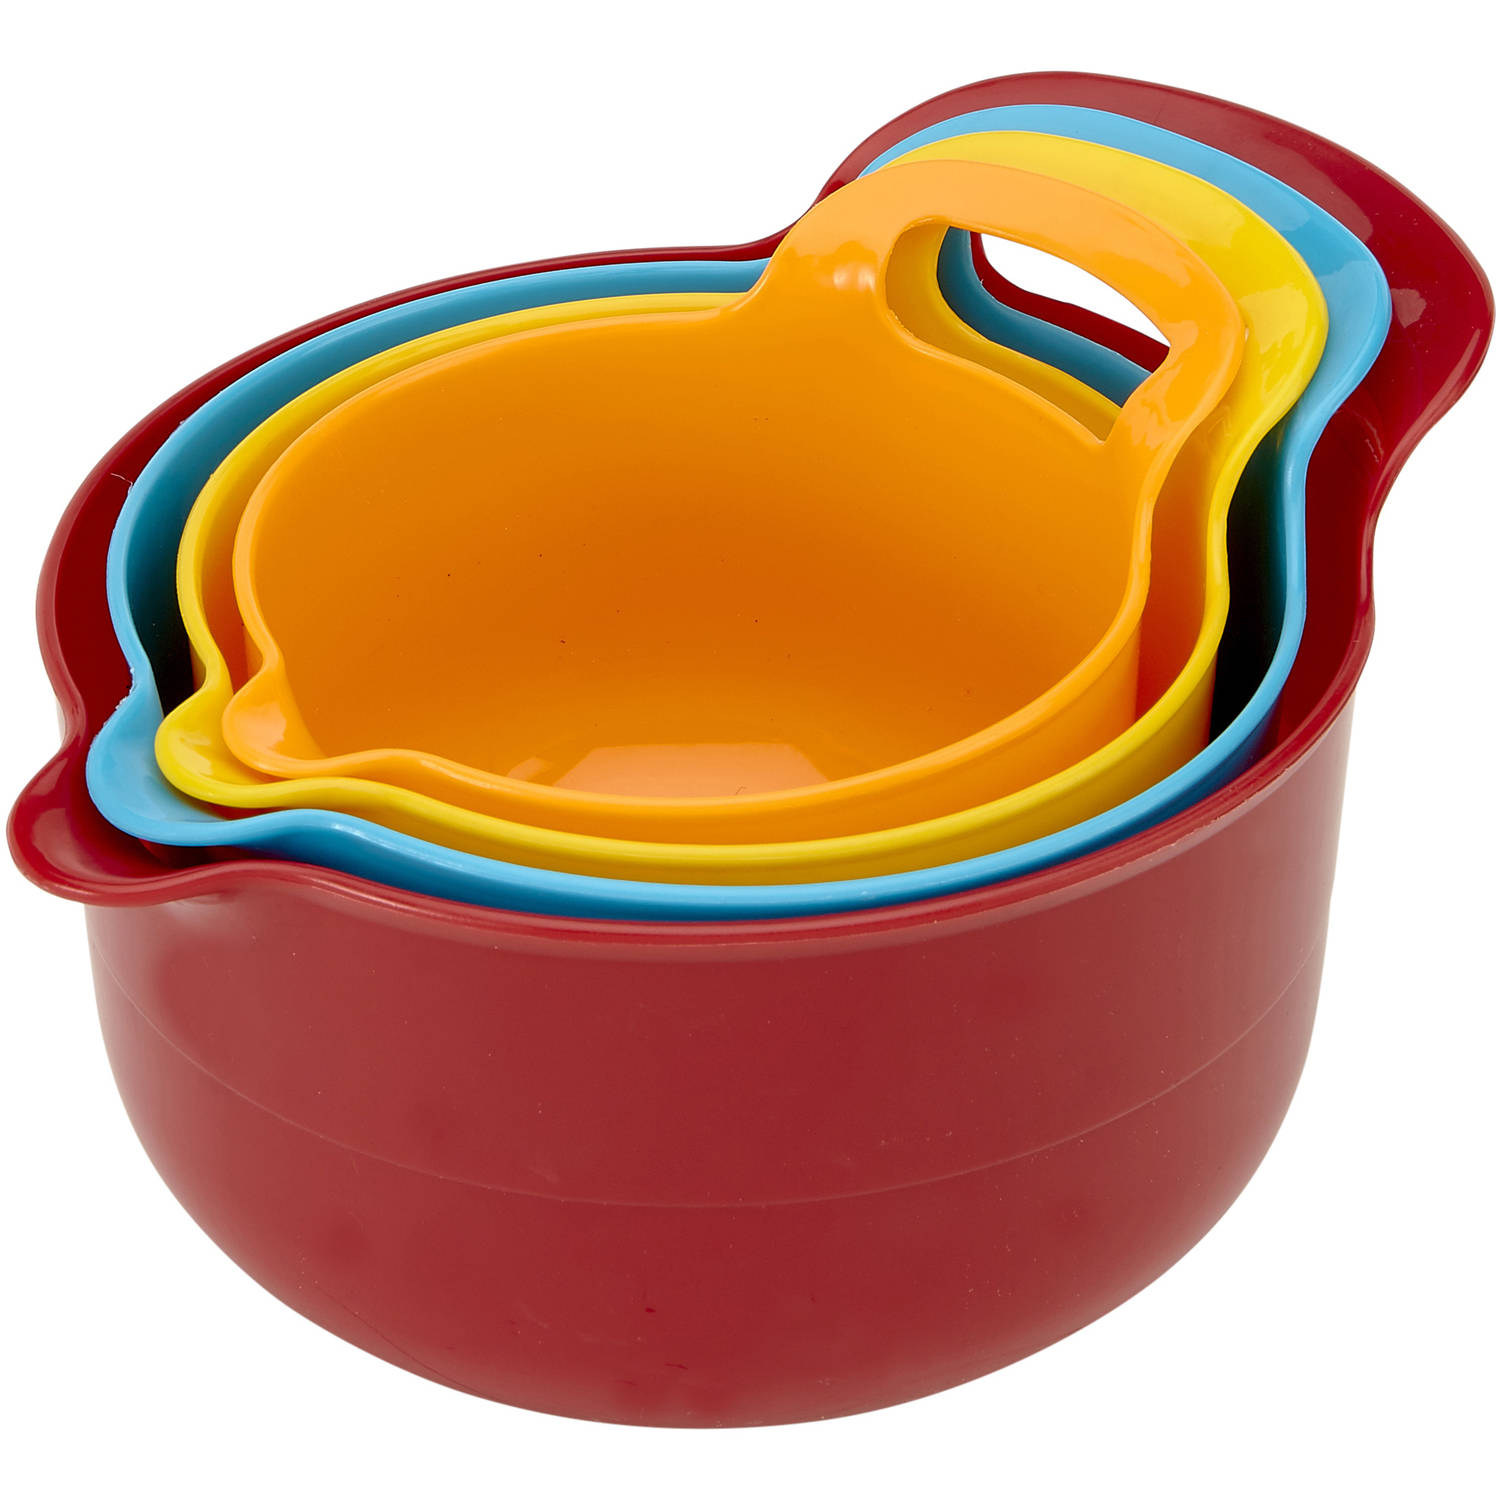 Kitchen Details 4-Piece Mixing Bowl Set by Kennedy International, INC.